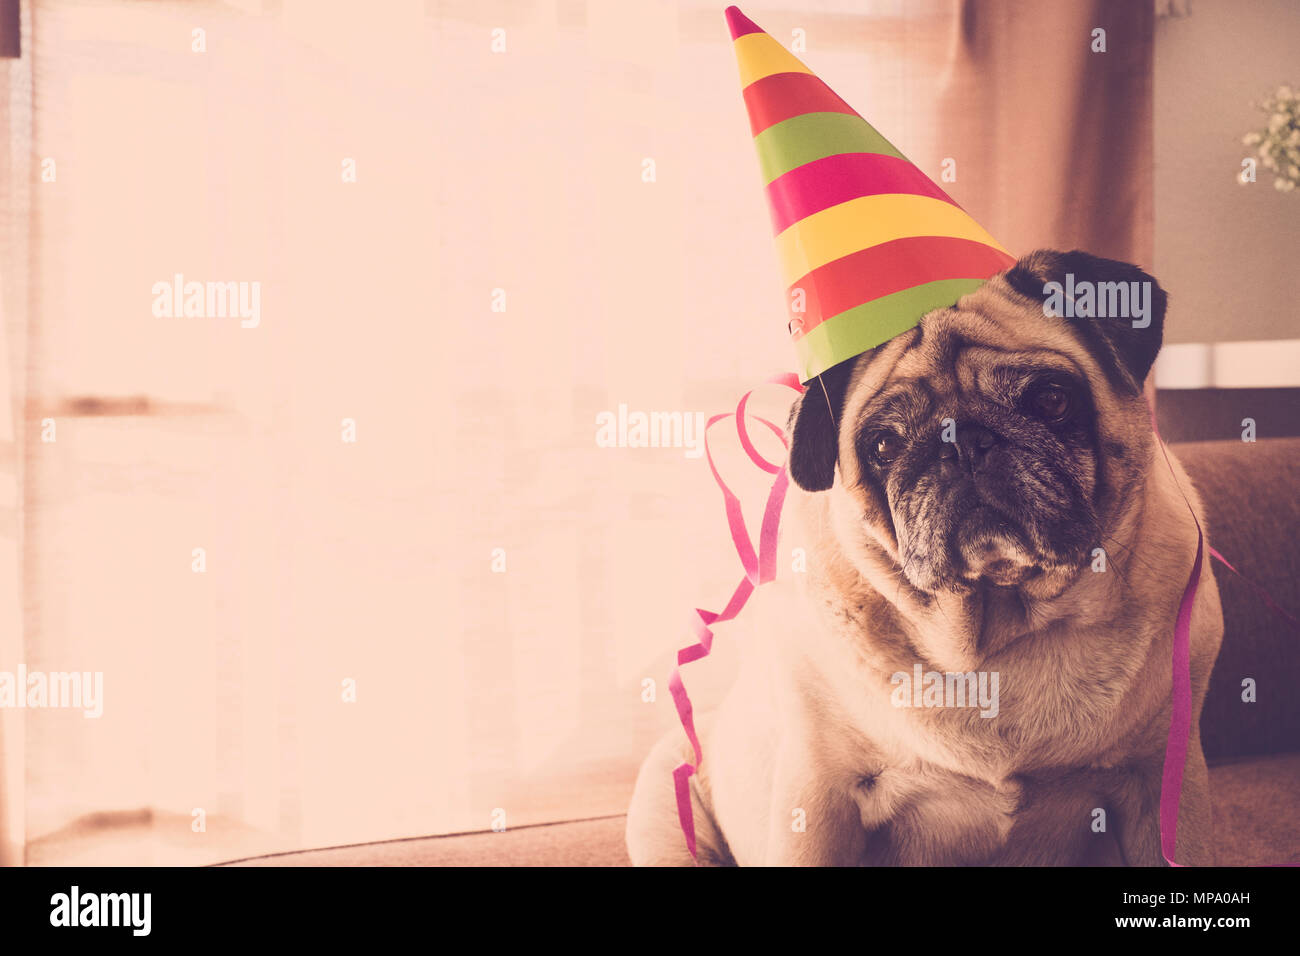 party and celebration time at home for a beautiful pug with nice hat. new year eve concept indoor. - Stock Image